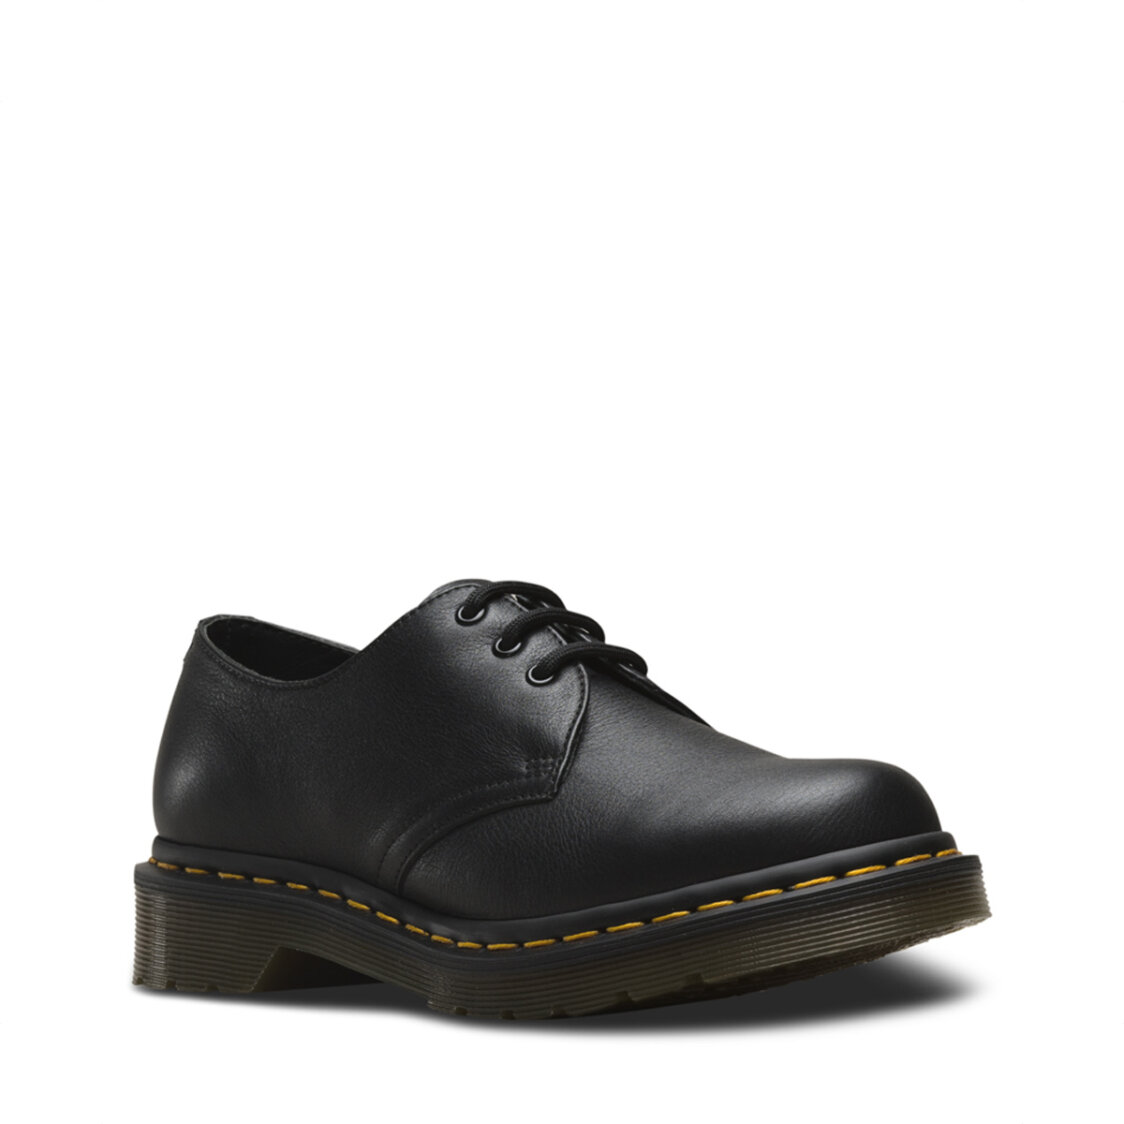 Dr Marten 1461 Womens Virginia Leather Oxford Shoes